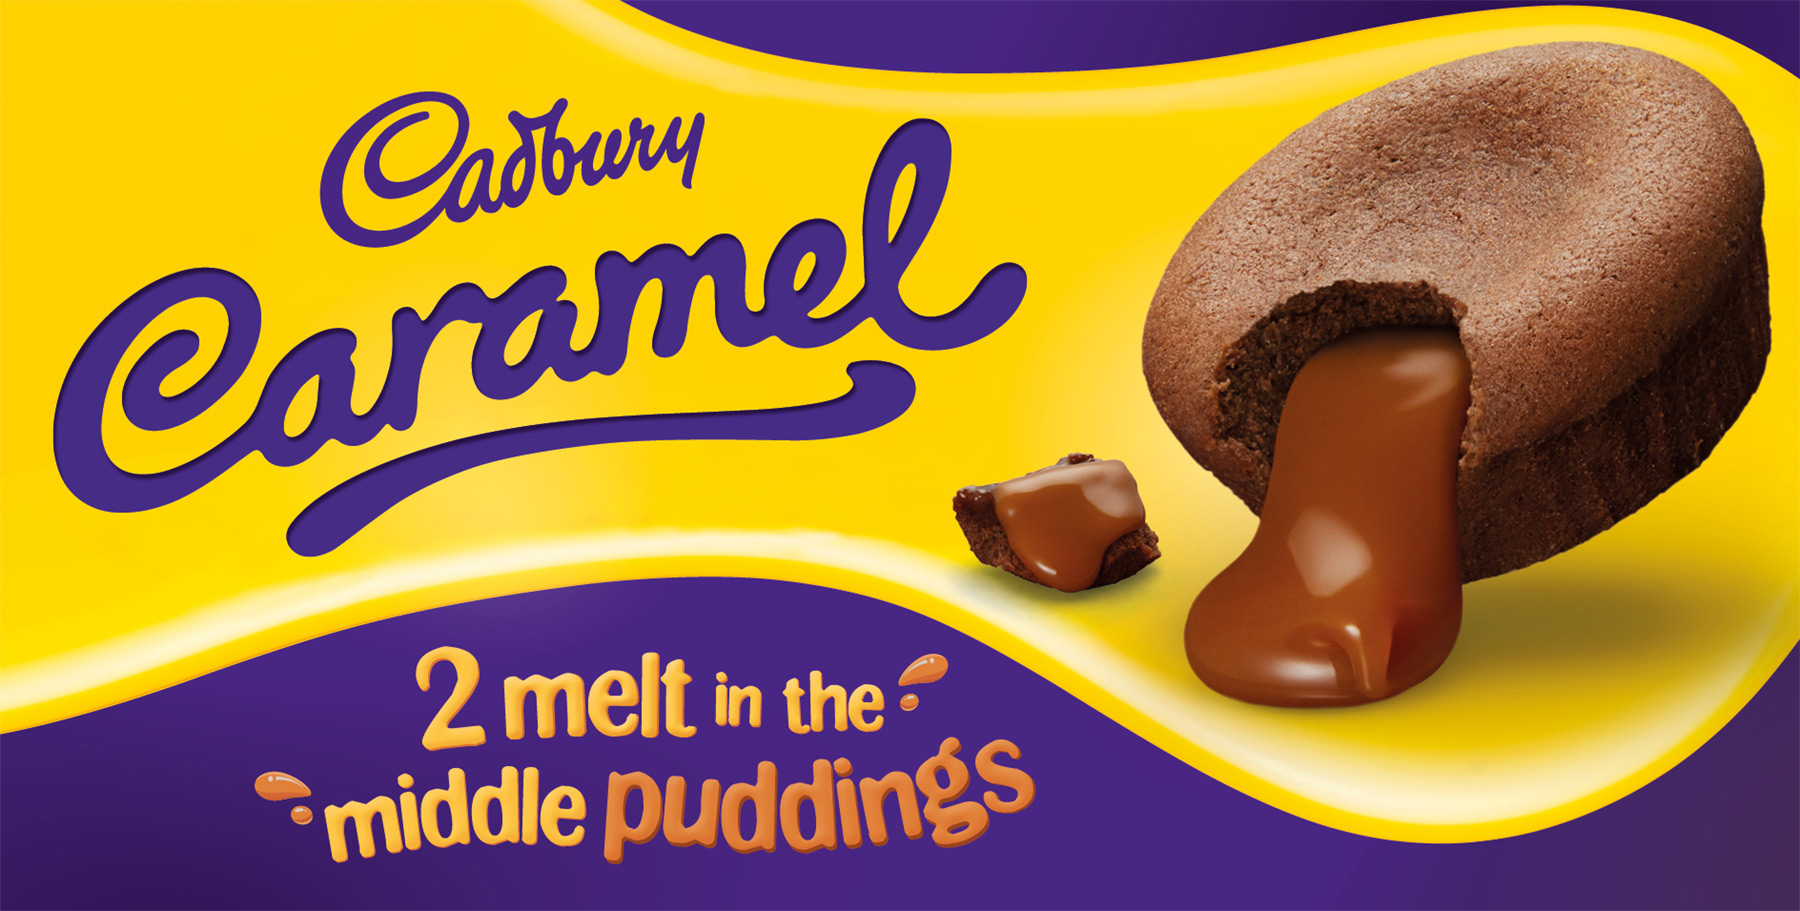 Cadbury_melt-in-the-middle_caramel_artwork.jpg